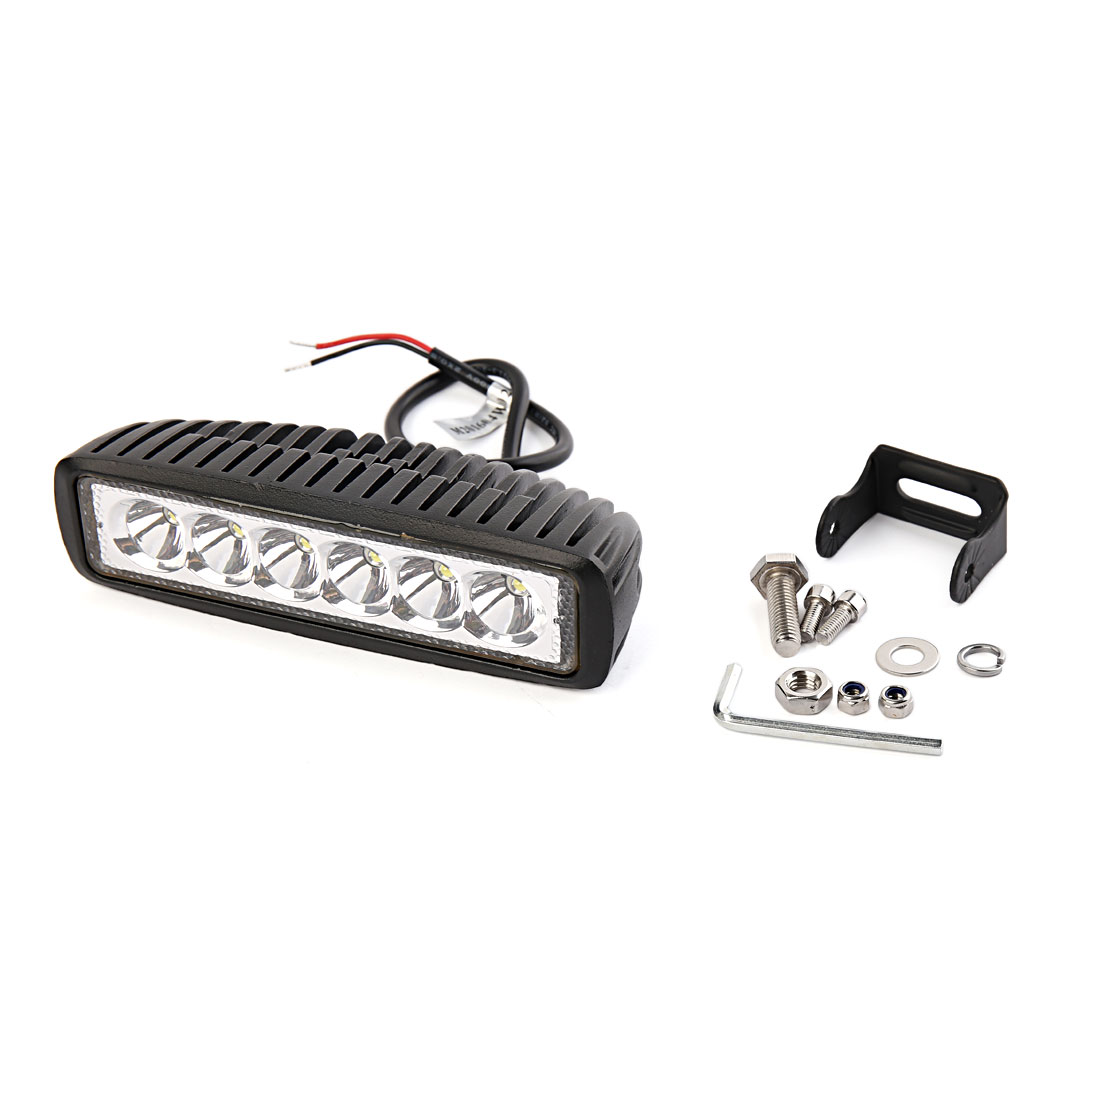 18W White 6 LED Spot Beam Work Light Fog Driving Lamp Offroad SUV ATV